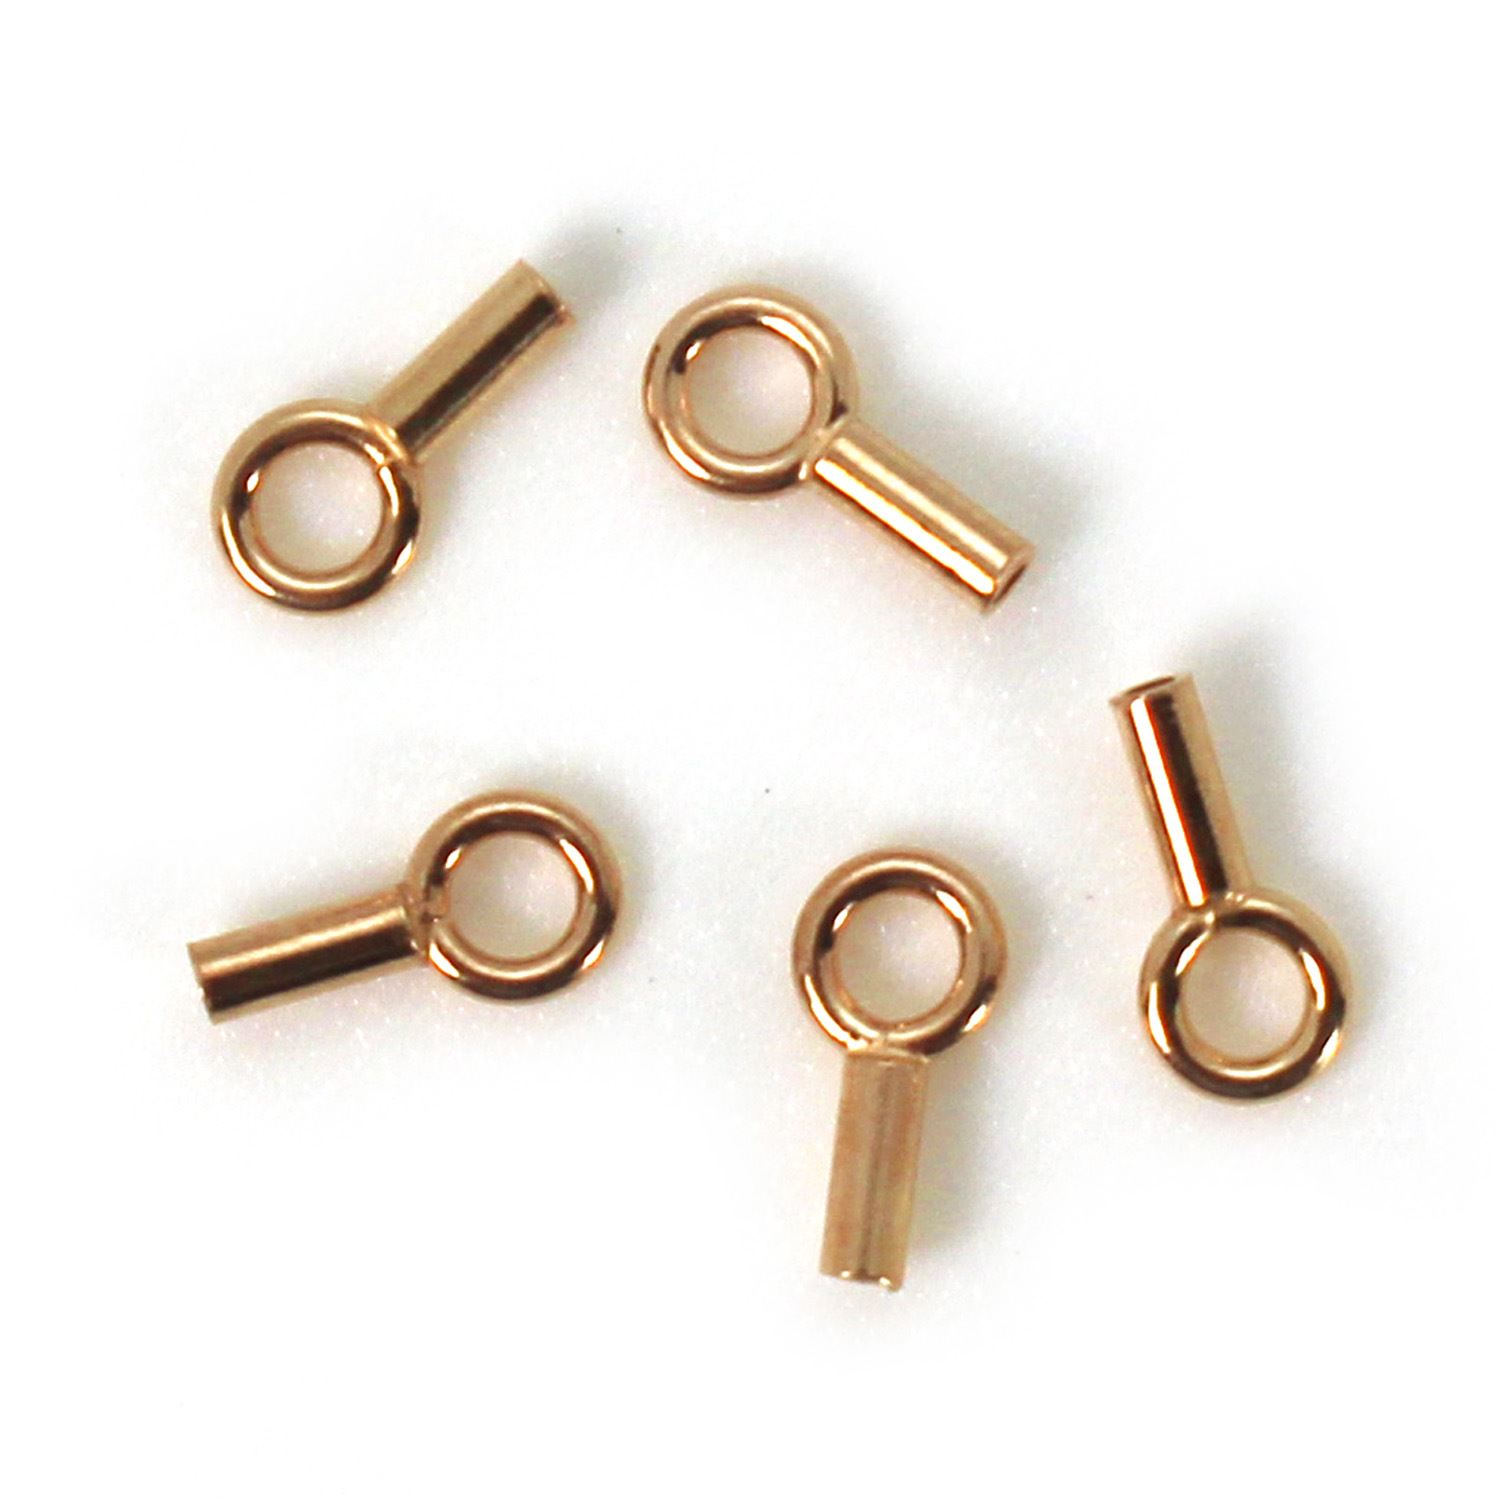 Rose Gold plated Sterling Silver Plain Tube End, 8mm (sold per 10 pcs)